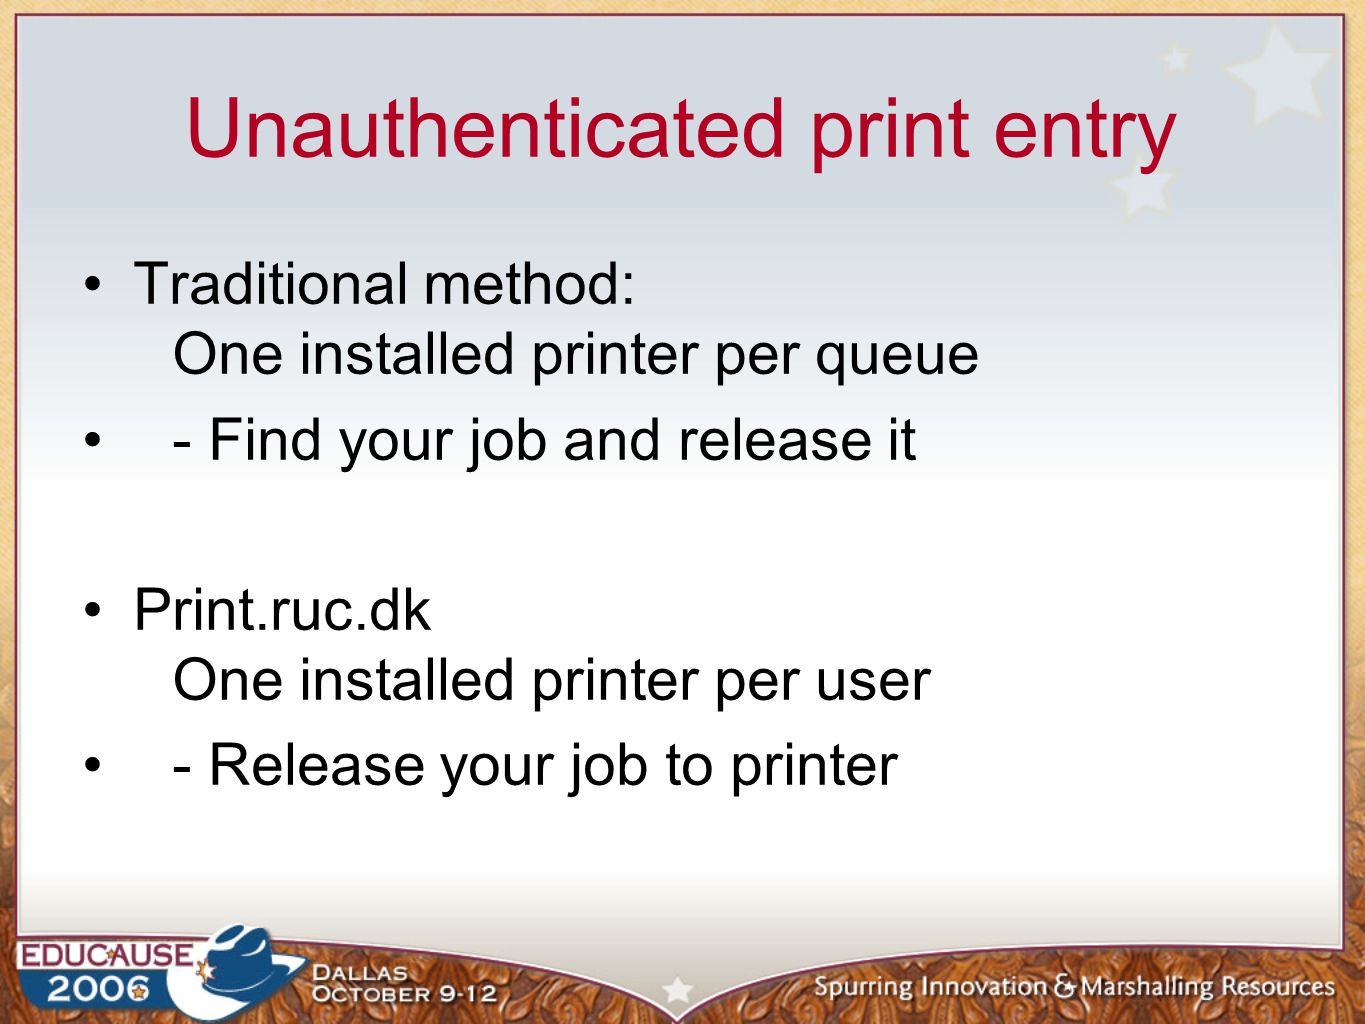 Unauthenticated print entry Traditional method: One installed printer per queue - Find your job and release it Print.ruc.dk One installed printer per user - Release your job to printer